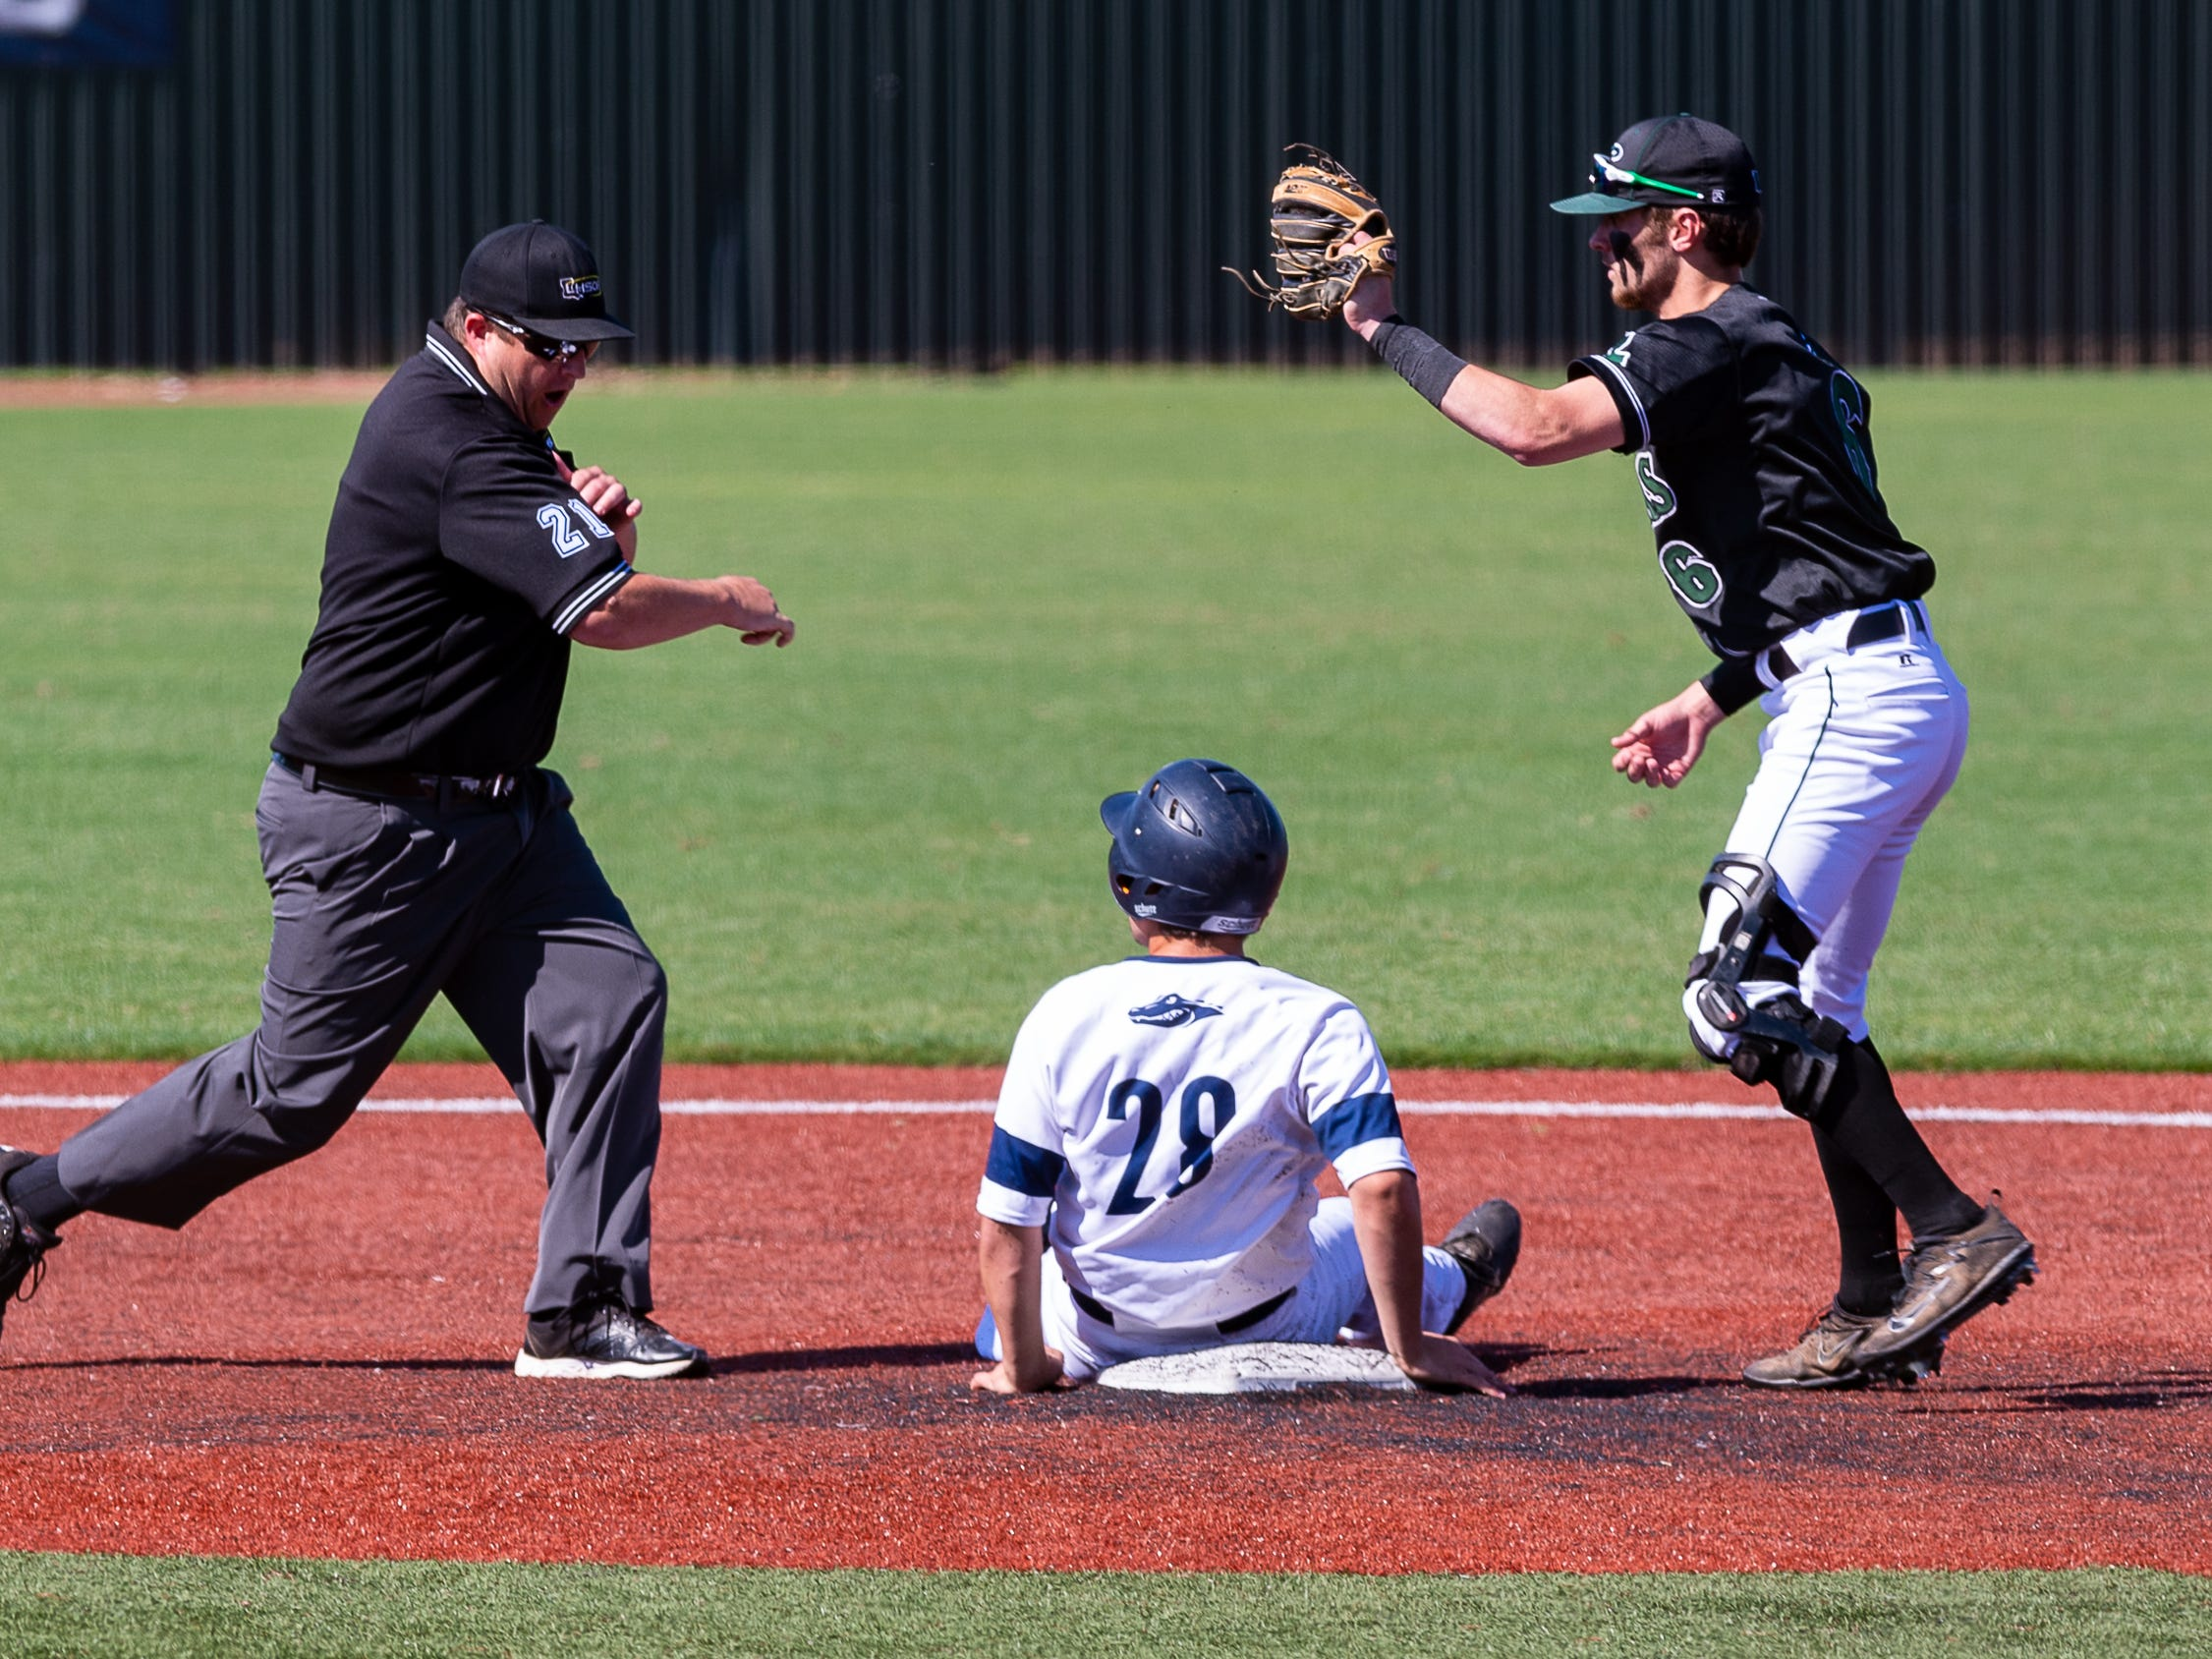 Second base umpire calls Carter Dooley out as Ascension Episcopal falls to Calvary Baptist Championship round at the LHSAA State Tournament. Monday, May 13, 2019.